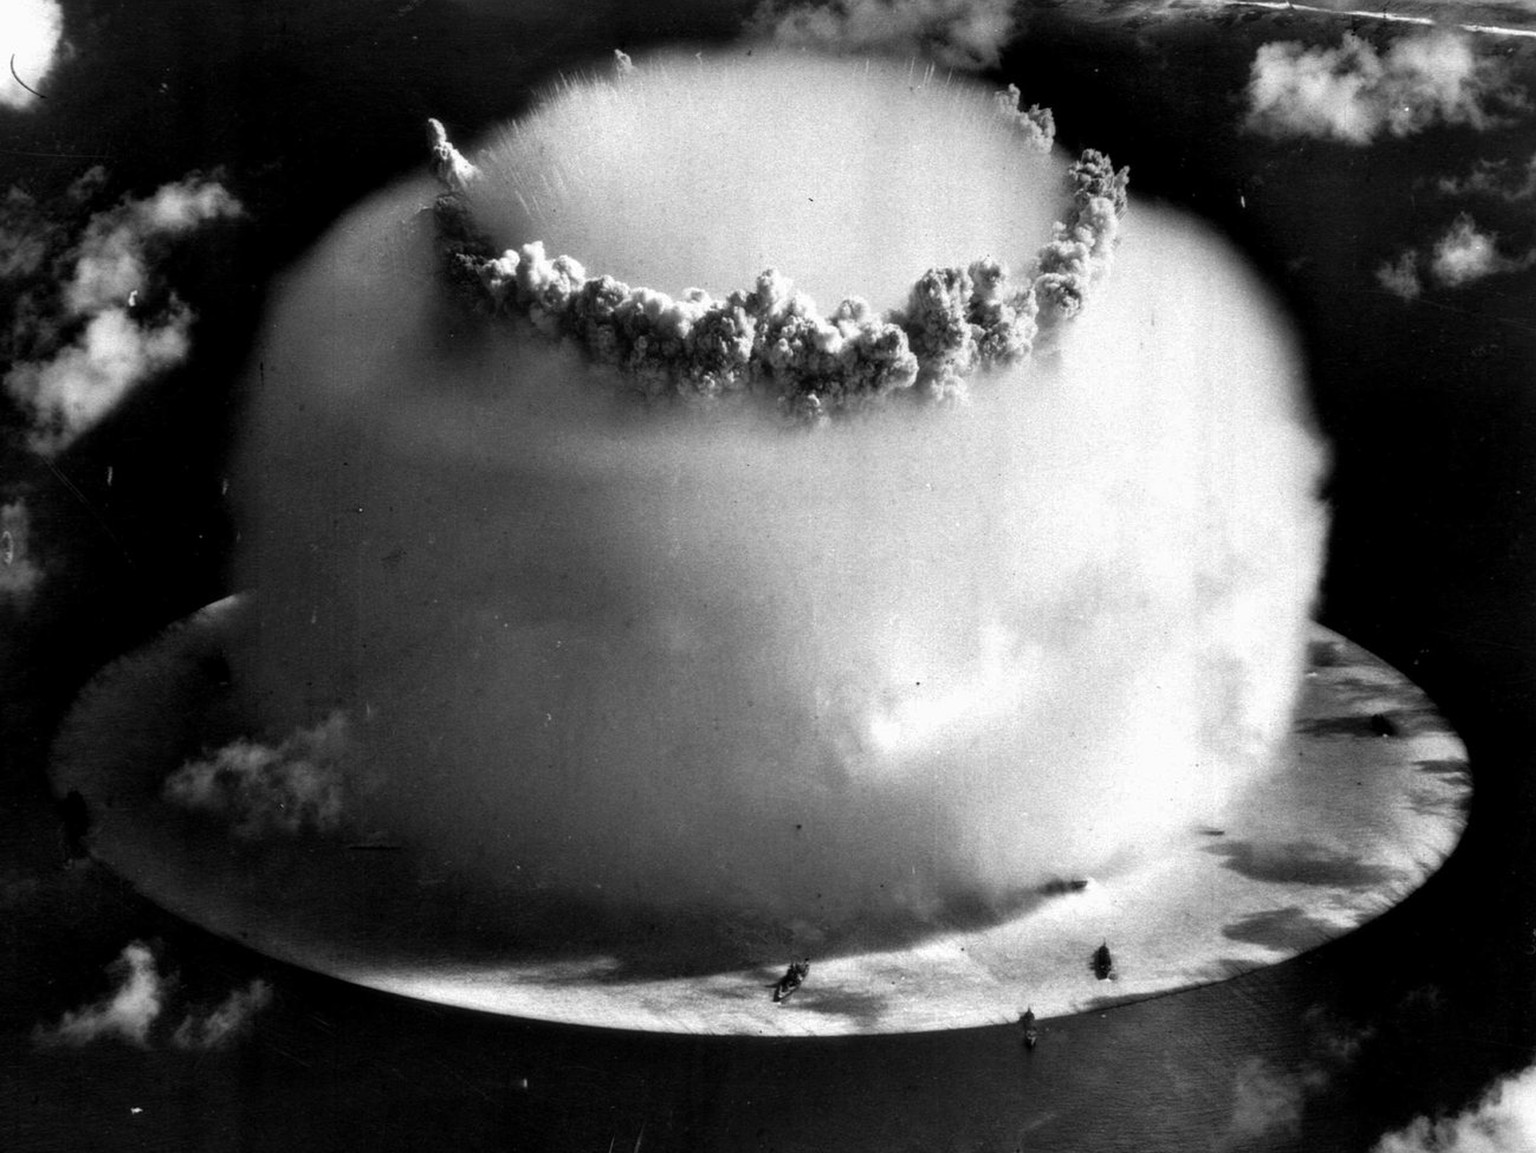 A huge mushroom cloud rises above Bikini atoll in the Marshall Islands July 25, 1946 following an atomic test blast, part of the U.S. military's